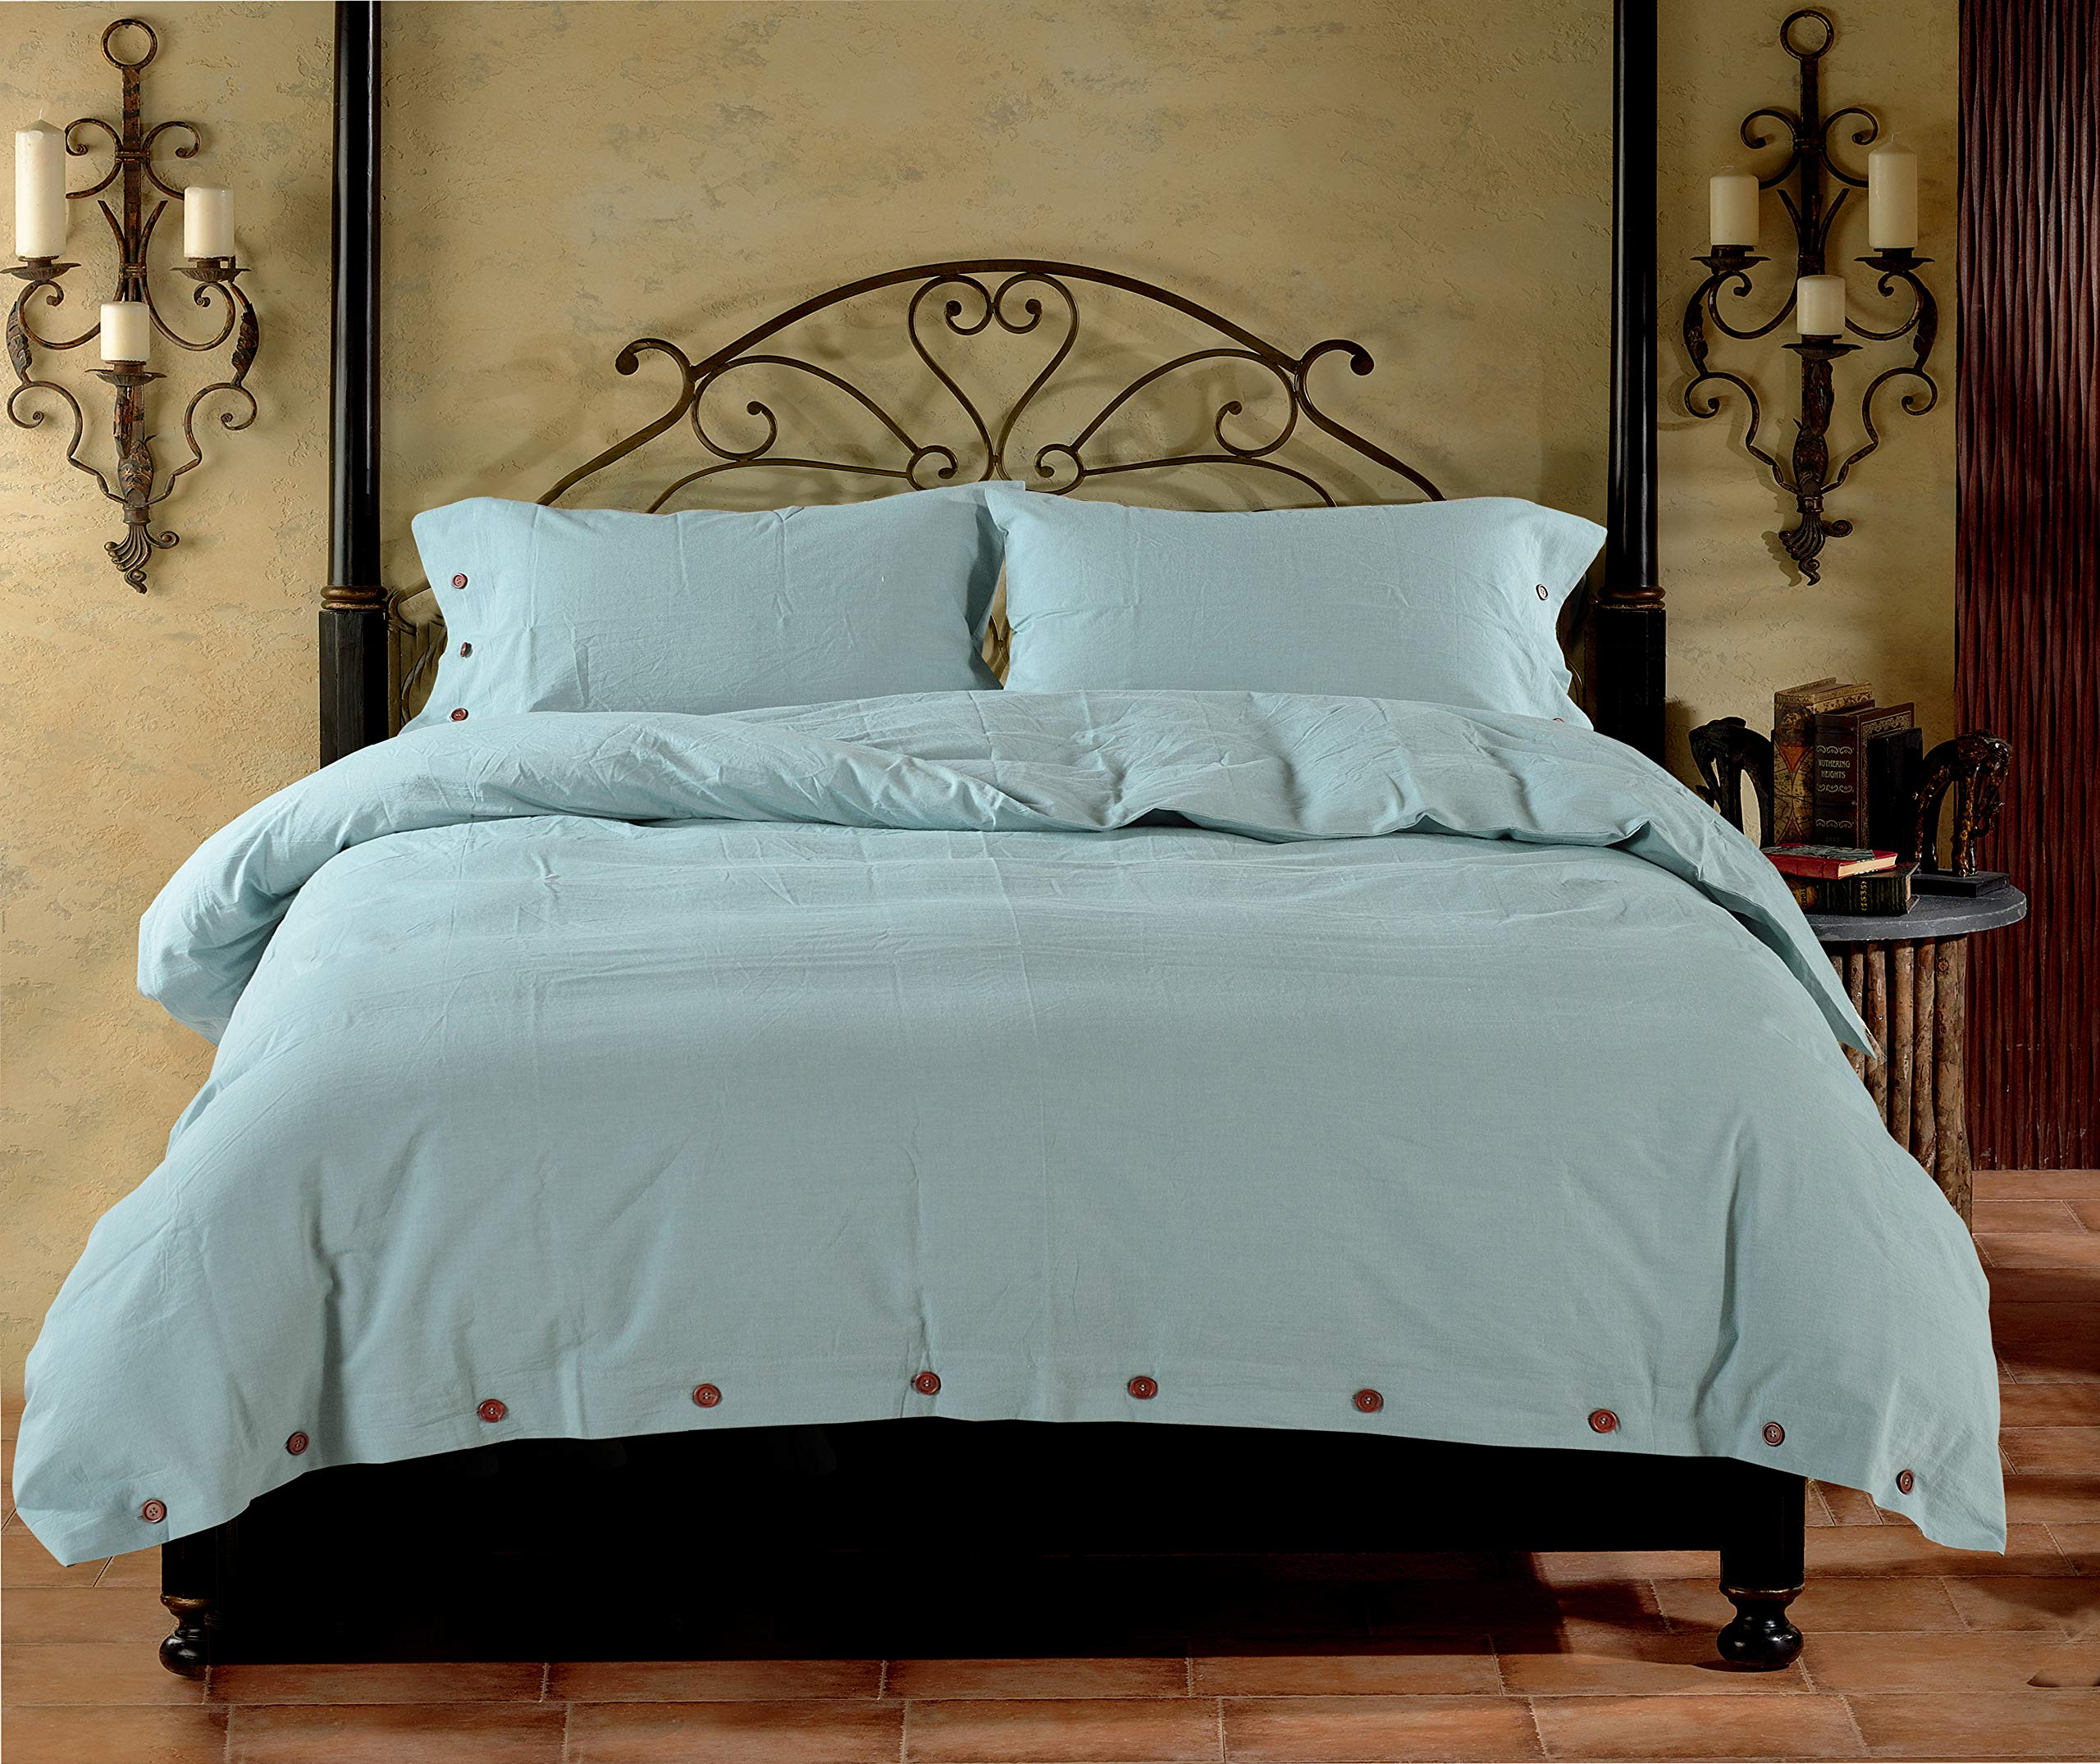 YU HAO CHEN Natural washed cotton duvet cover king,3pc Duvet Cover Set, Comforter Sets extremely durable & easy care (KING,Spa Blue) by YU HAO CHEN (Image #1)